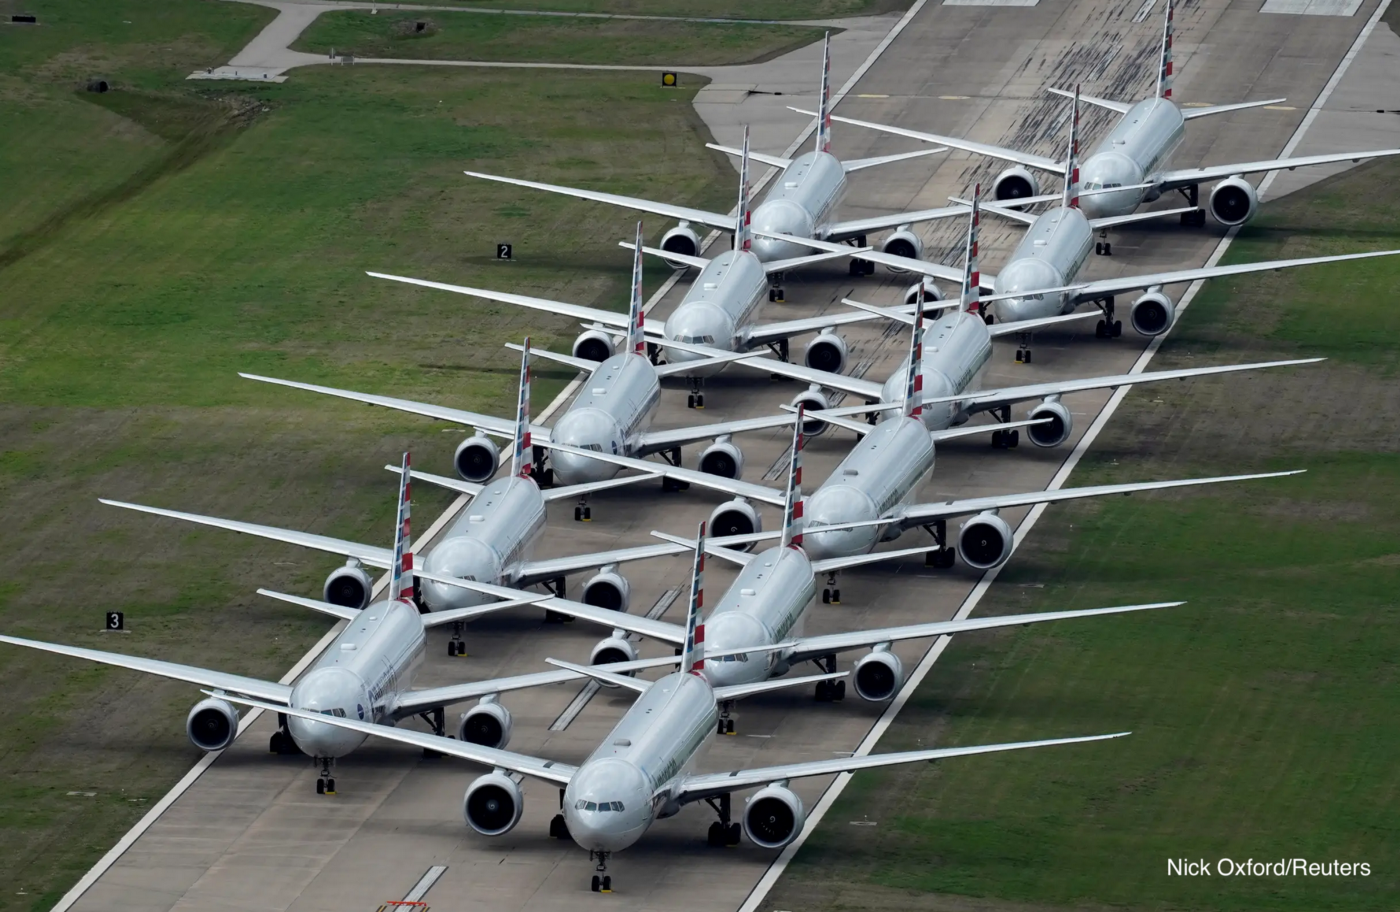 Parked airplanes by Nick Oxford/Reuters